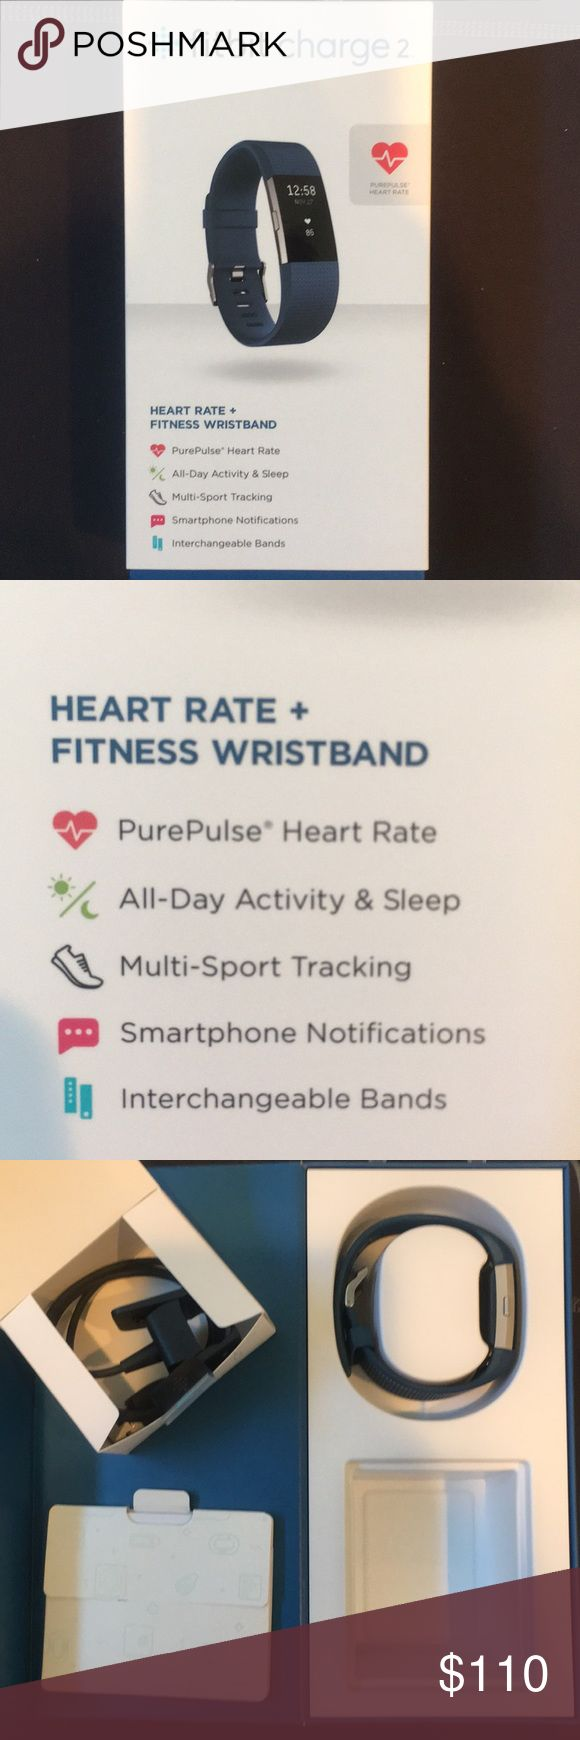 Fitbit Charge 2 (heart rate + fitness wristband) Used for about 5 months. It has the heart rate monitor built in. Comes with all original box, charger and material. fitbit Other